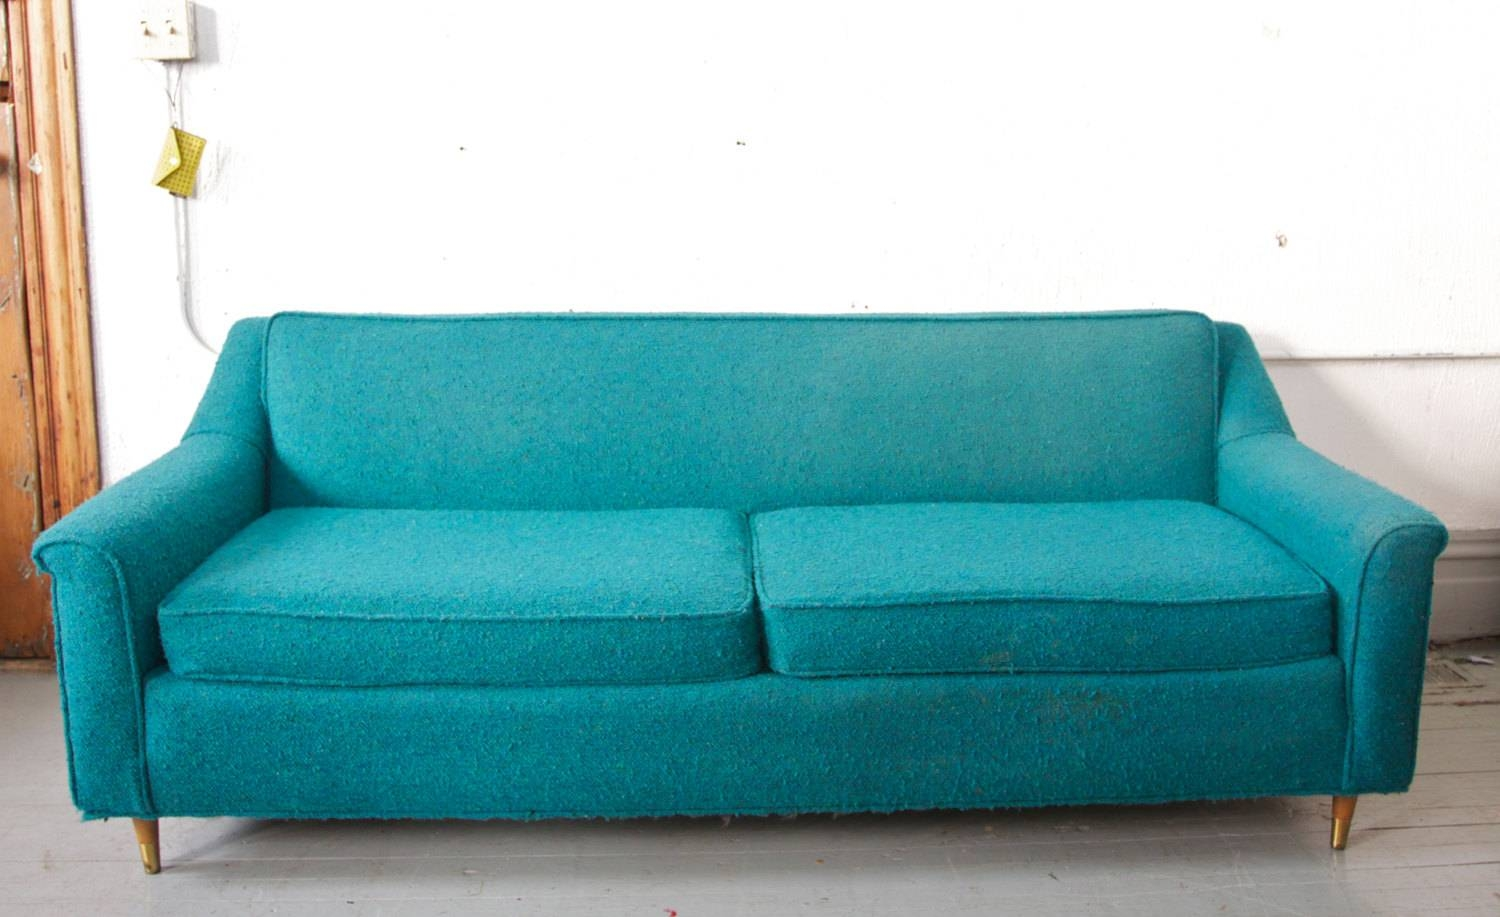 Sofas Center : Retro Sofas For Sale With Frieze Fabricretro Fabric inside Retro Sofas for Sale (Image 25 of 30)